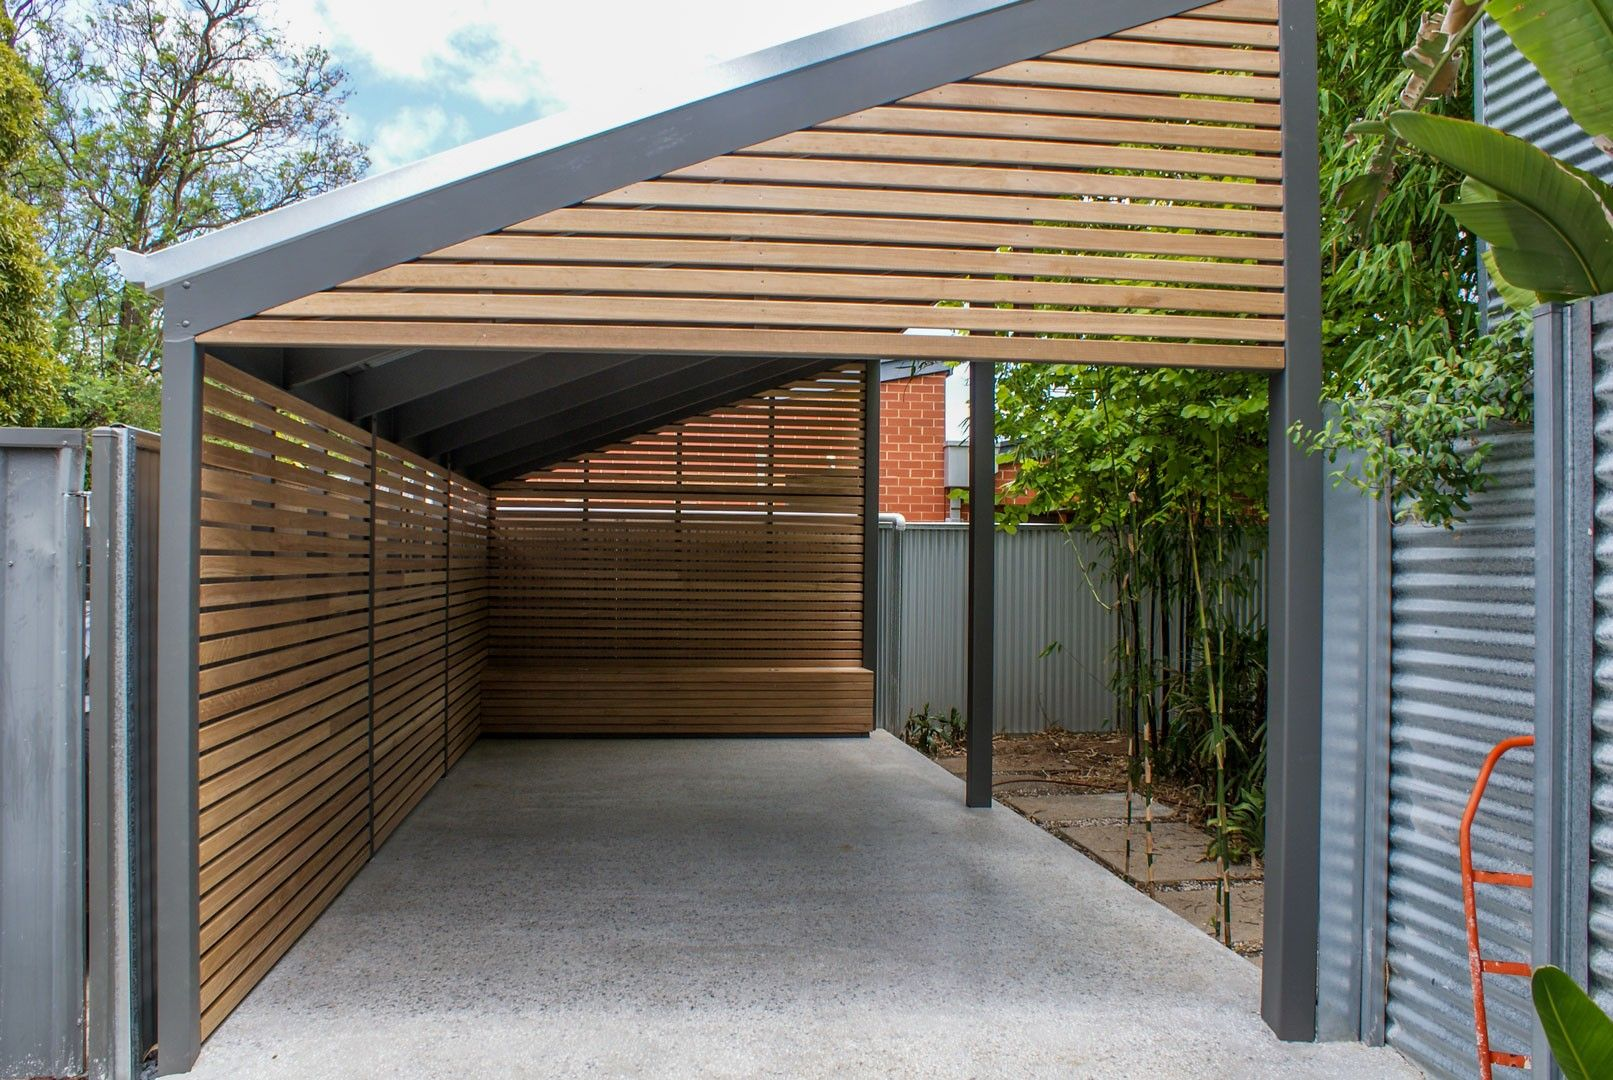 Cheap Storage Adelaide Hardwood Timber Carport In Adelaide Terrasse Og Have In